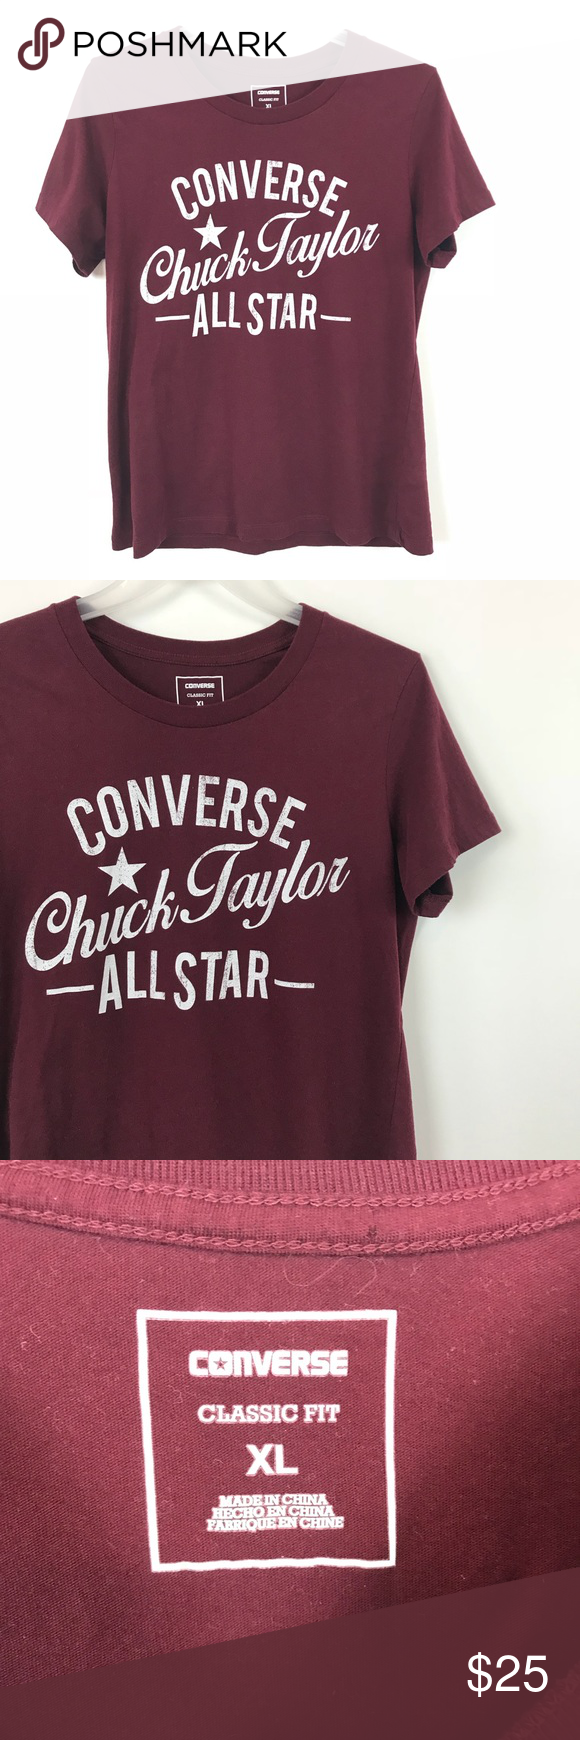 d473cbb06d7a Converse Chuck Taylor Maroon Graphic T-Shirt Converse Chuck Taylor women s  cut short sleeve graphic t-Shirt sz XL. Excellent pre owned condition ...